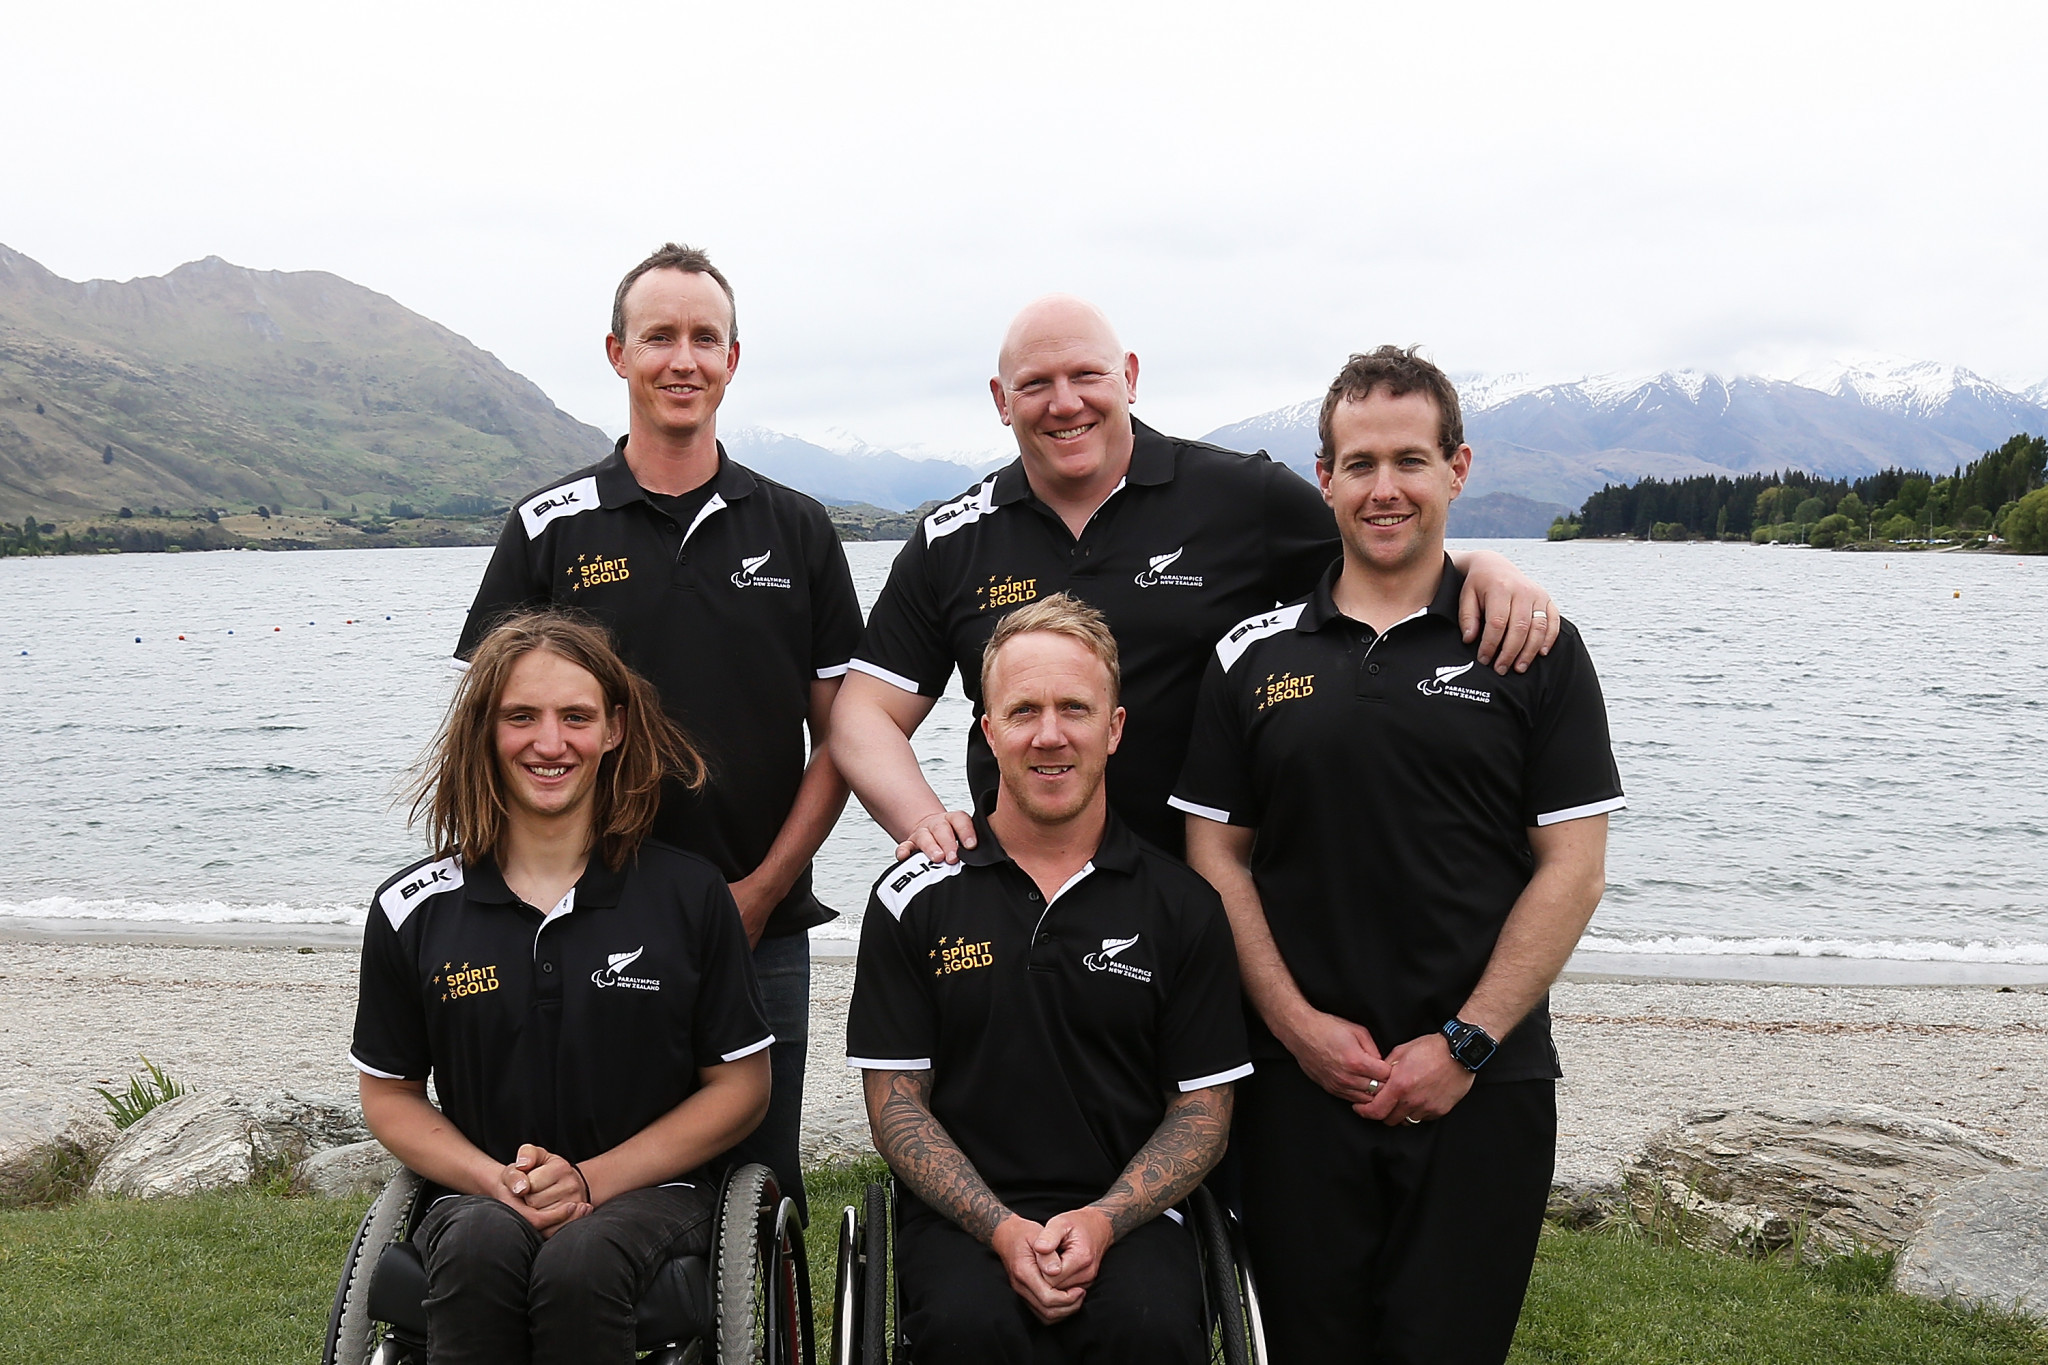 Paralympics New Zealand names first four athletes to compete at Pyeongchang 2018